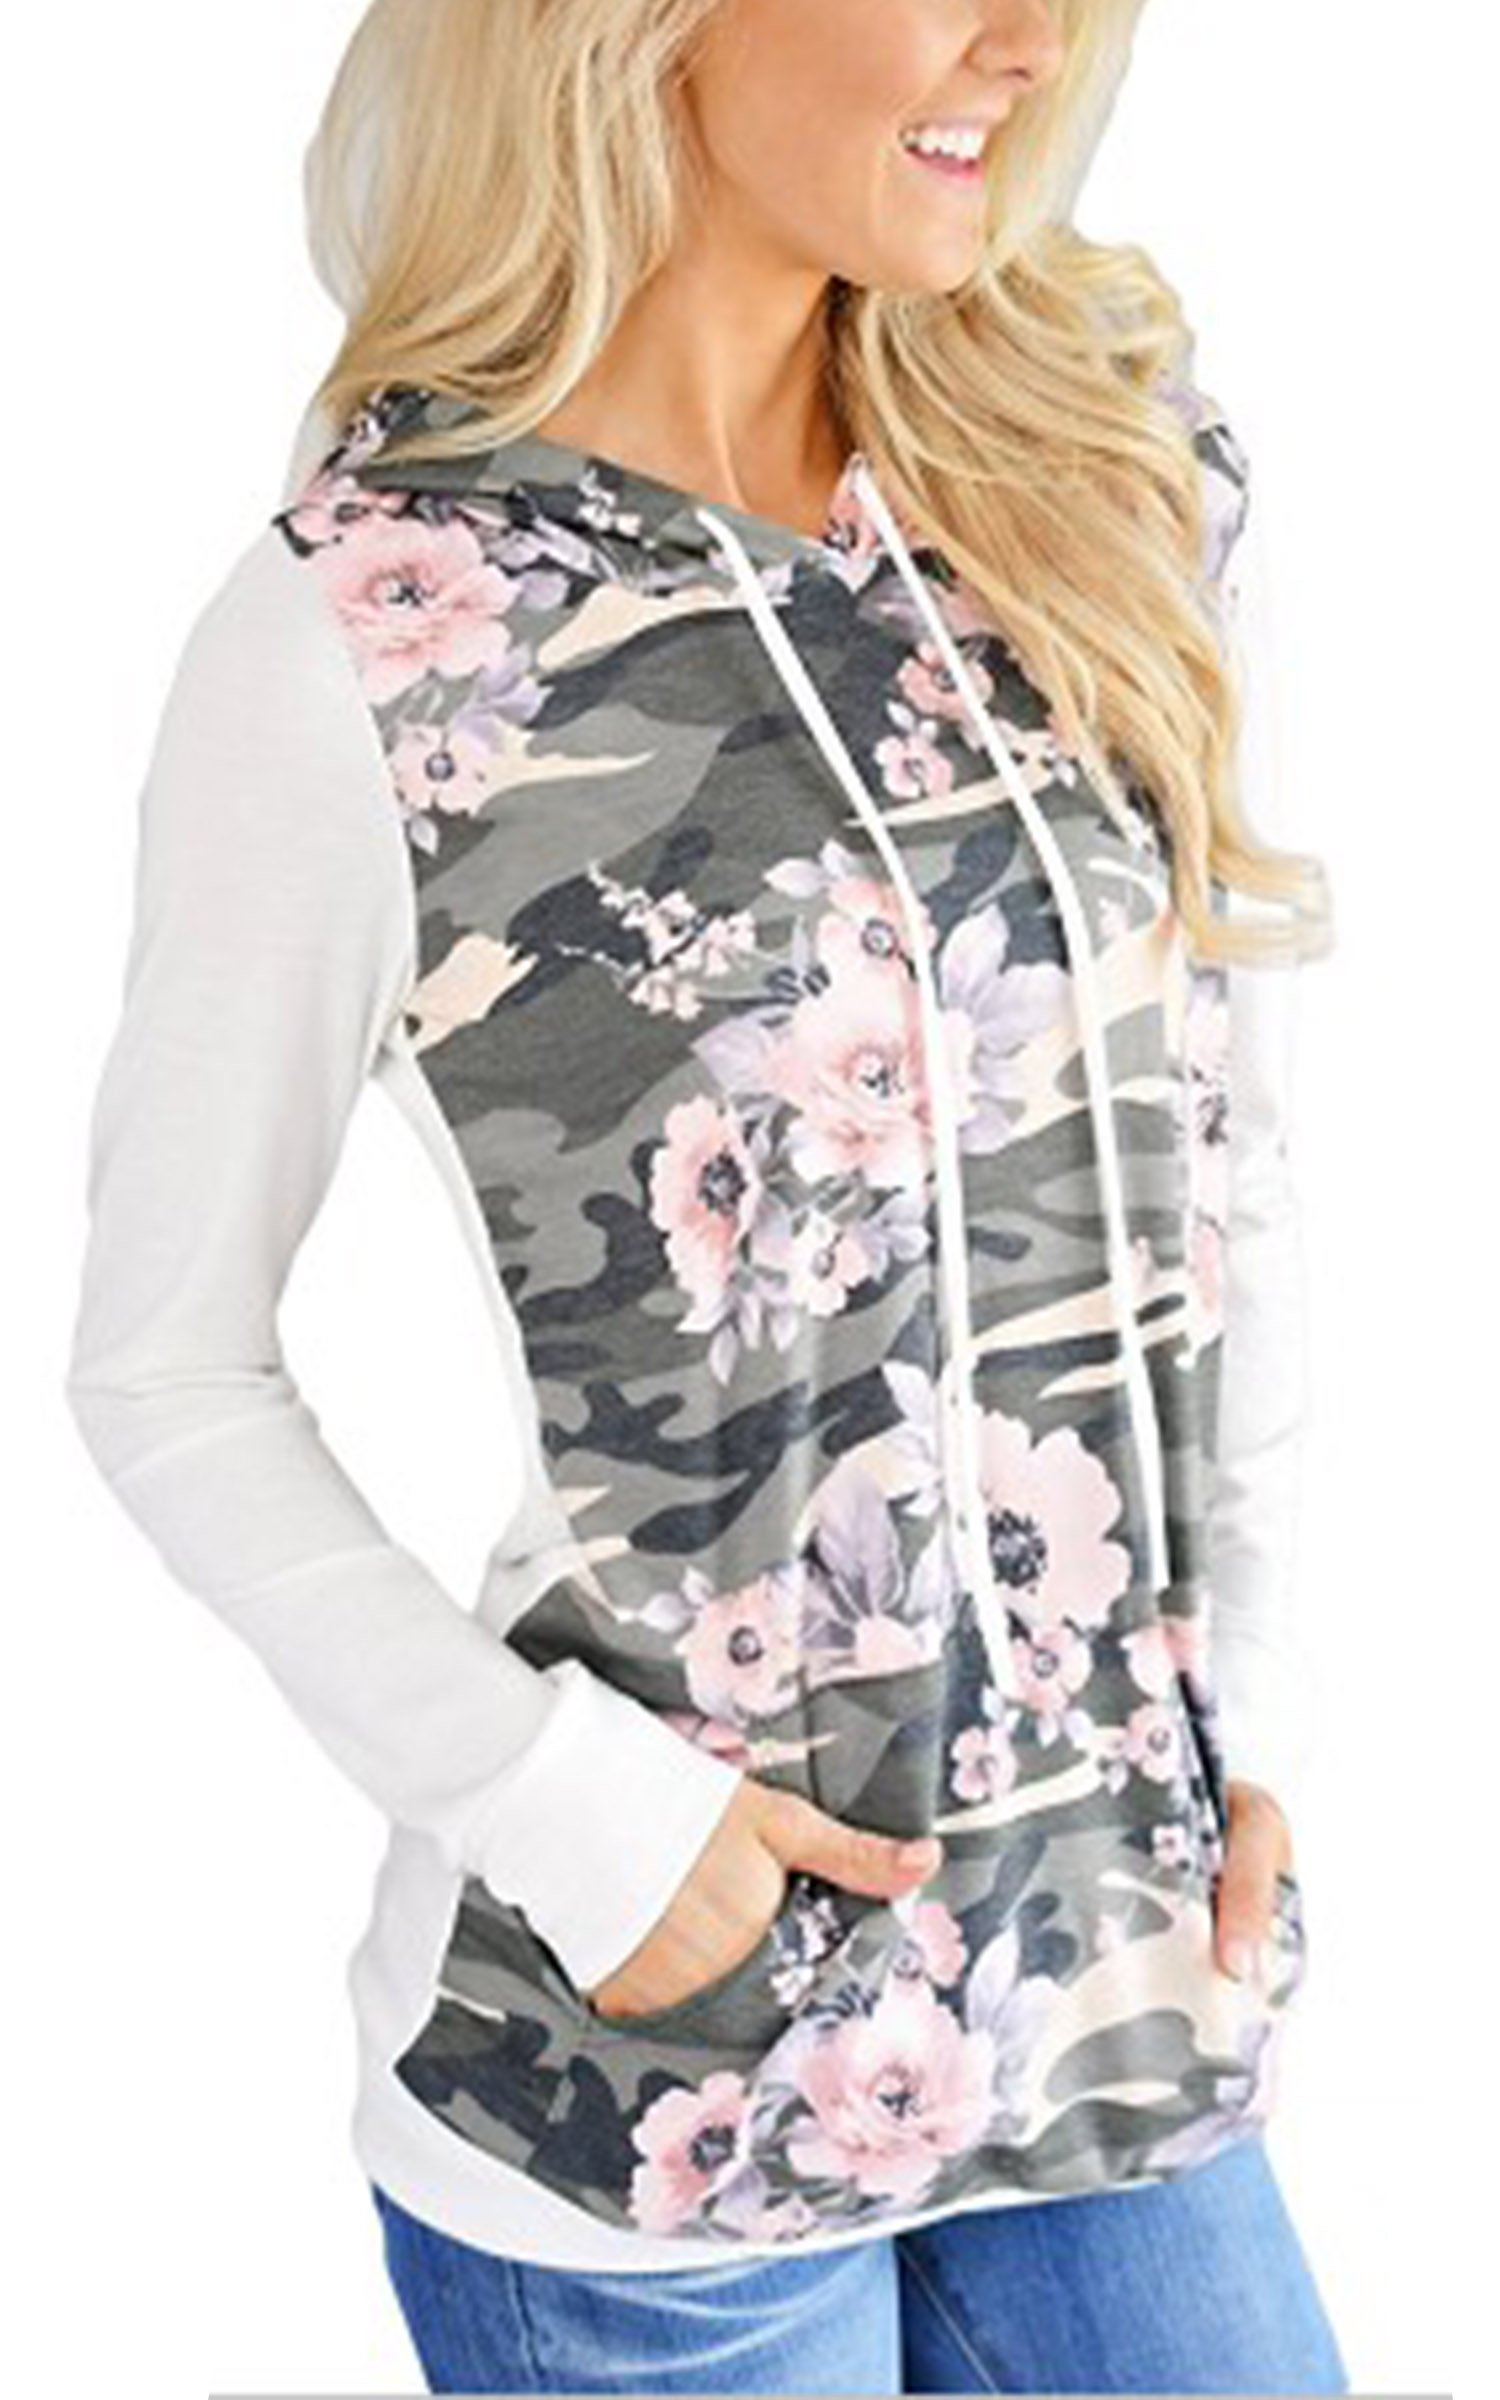 Angashion Women's Floral Printed Long Sleeve Pullover Hoodies Sweatshirt with Pocket White XL